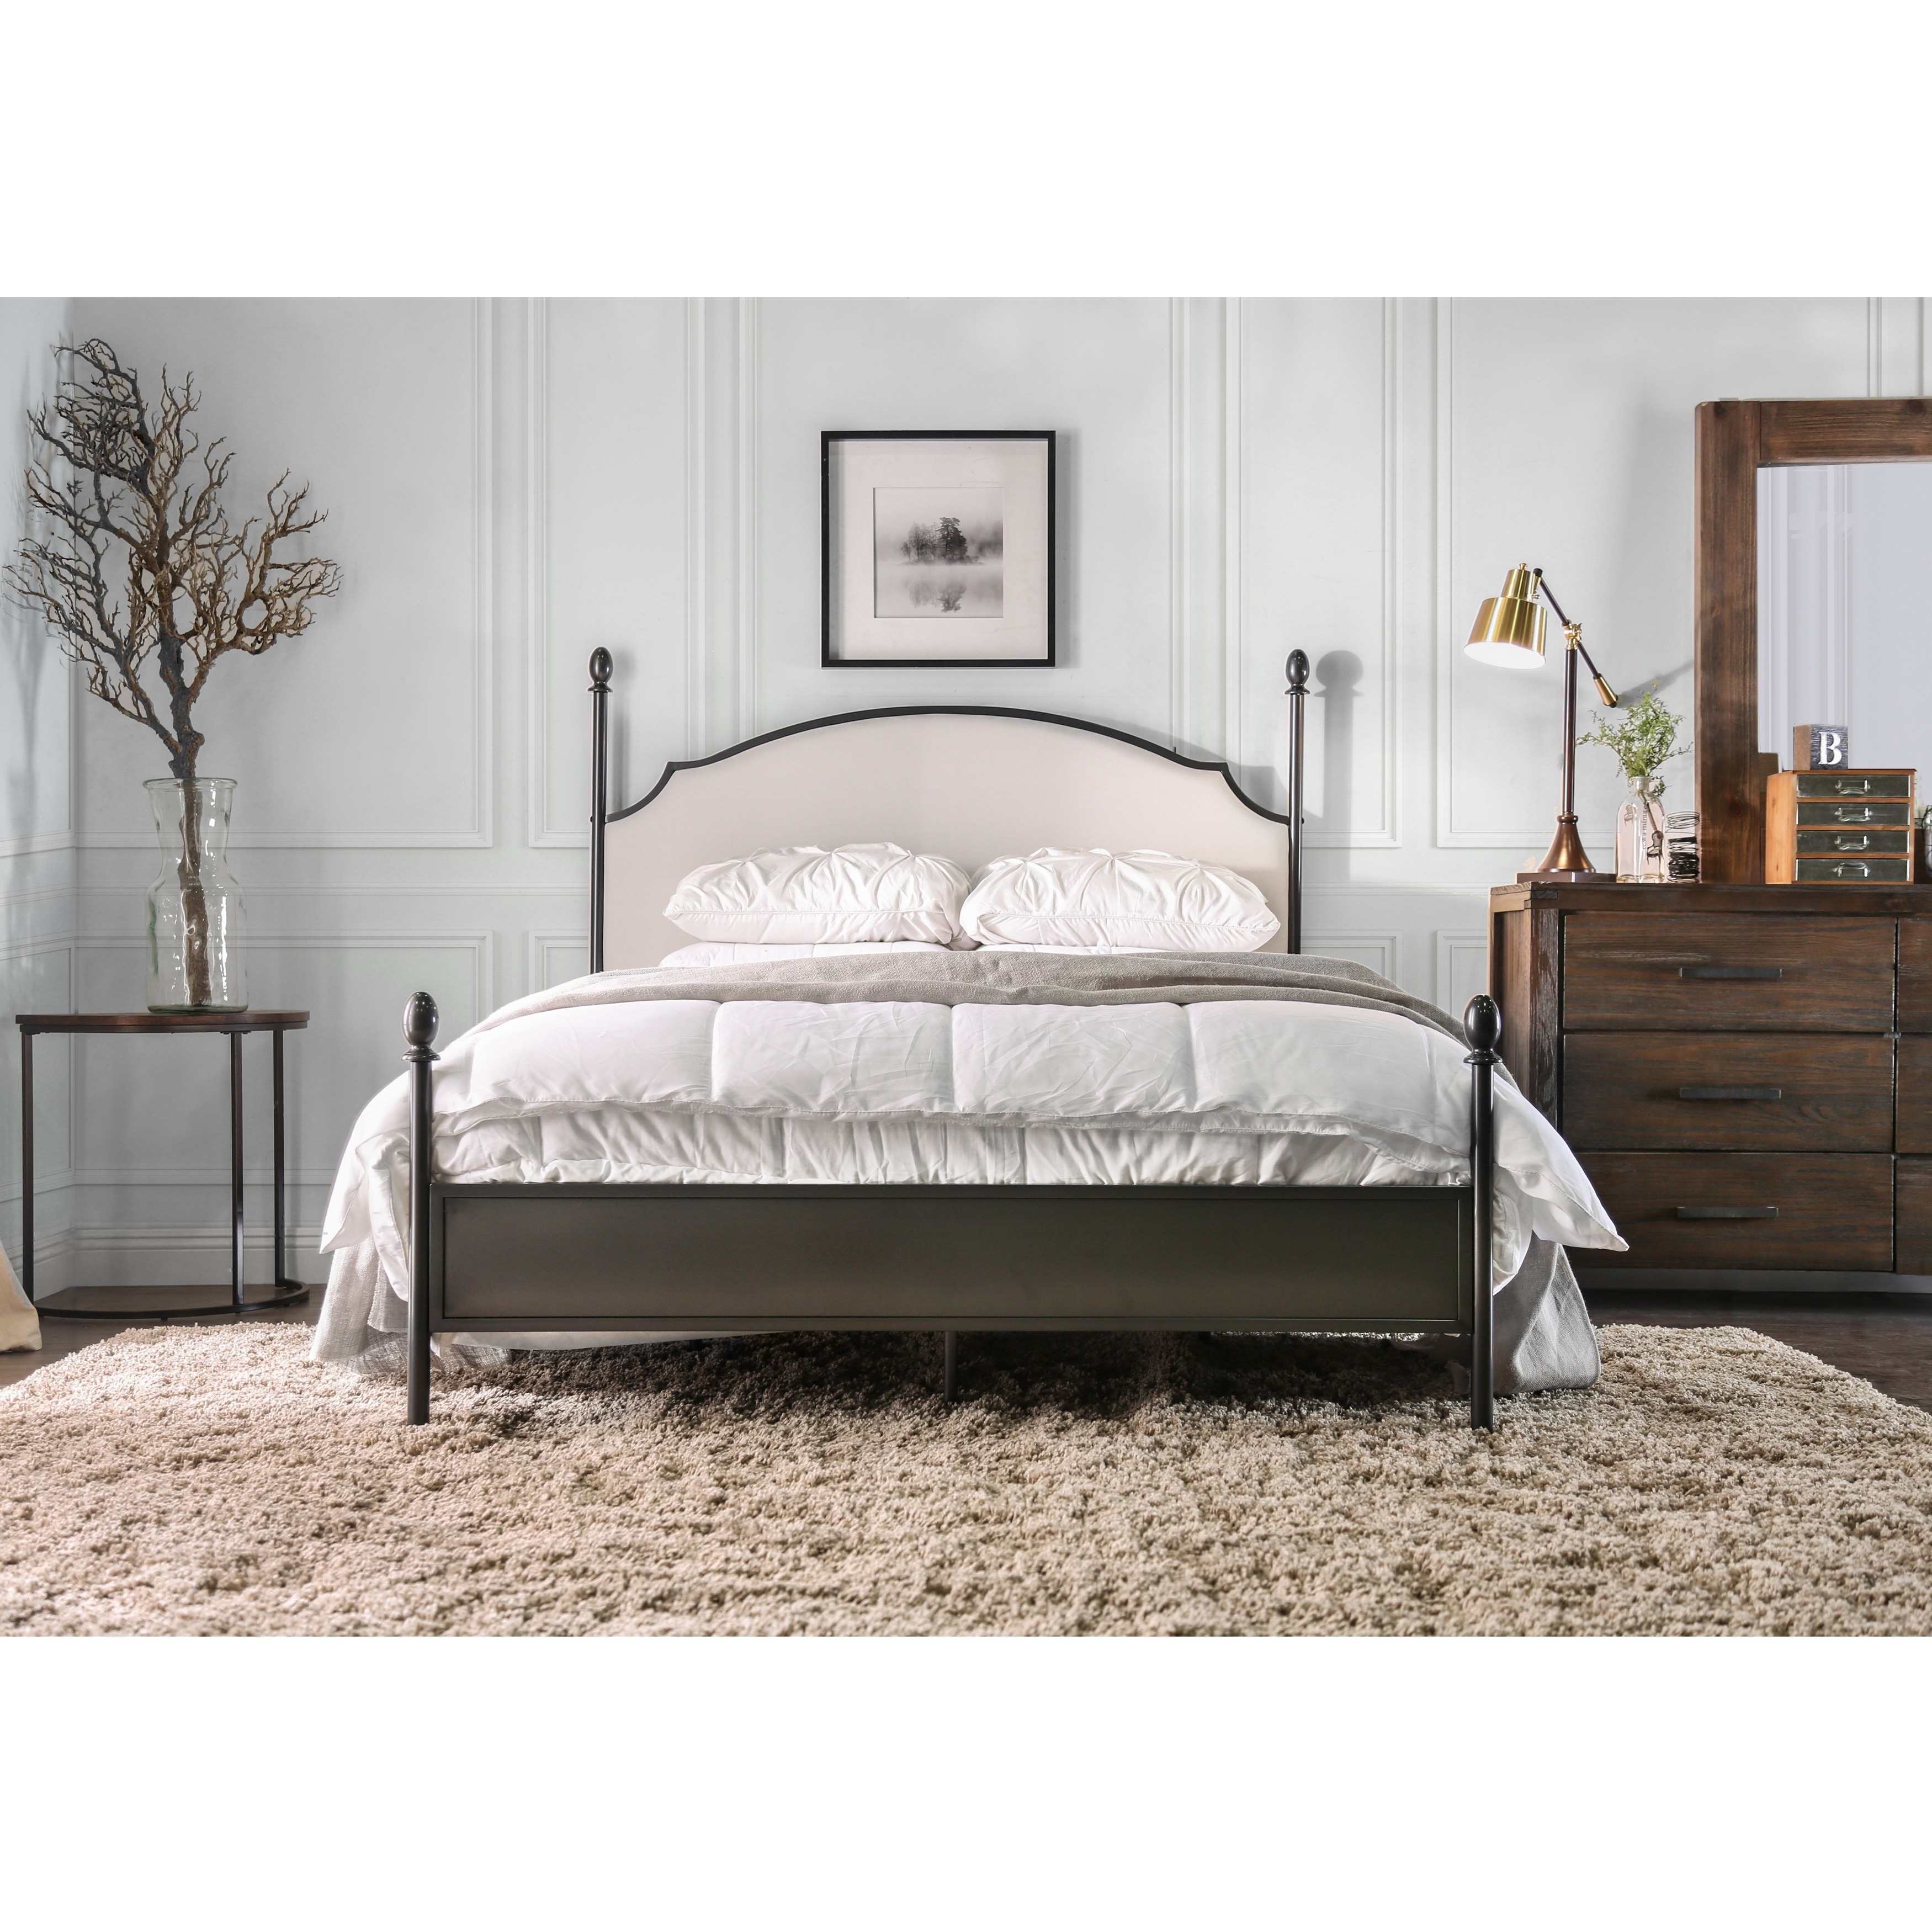 Merveilleux Shop Furniture Of America Karis Contemporary Arched Four Poster Bed   Free  Shipping On Orders Over $45   Overstock.com   14539213